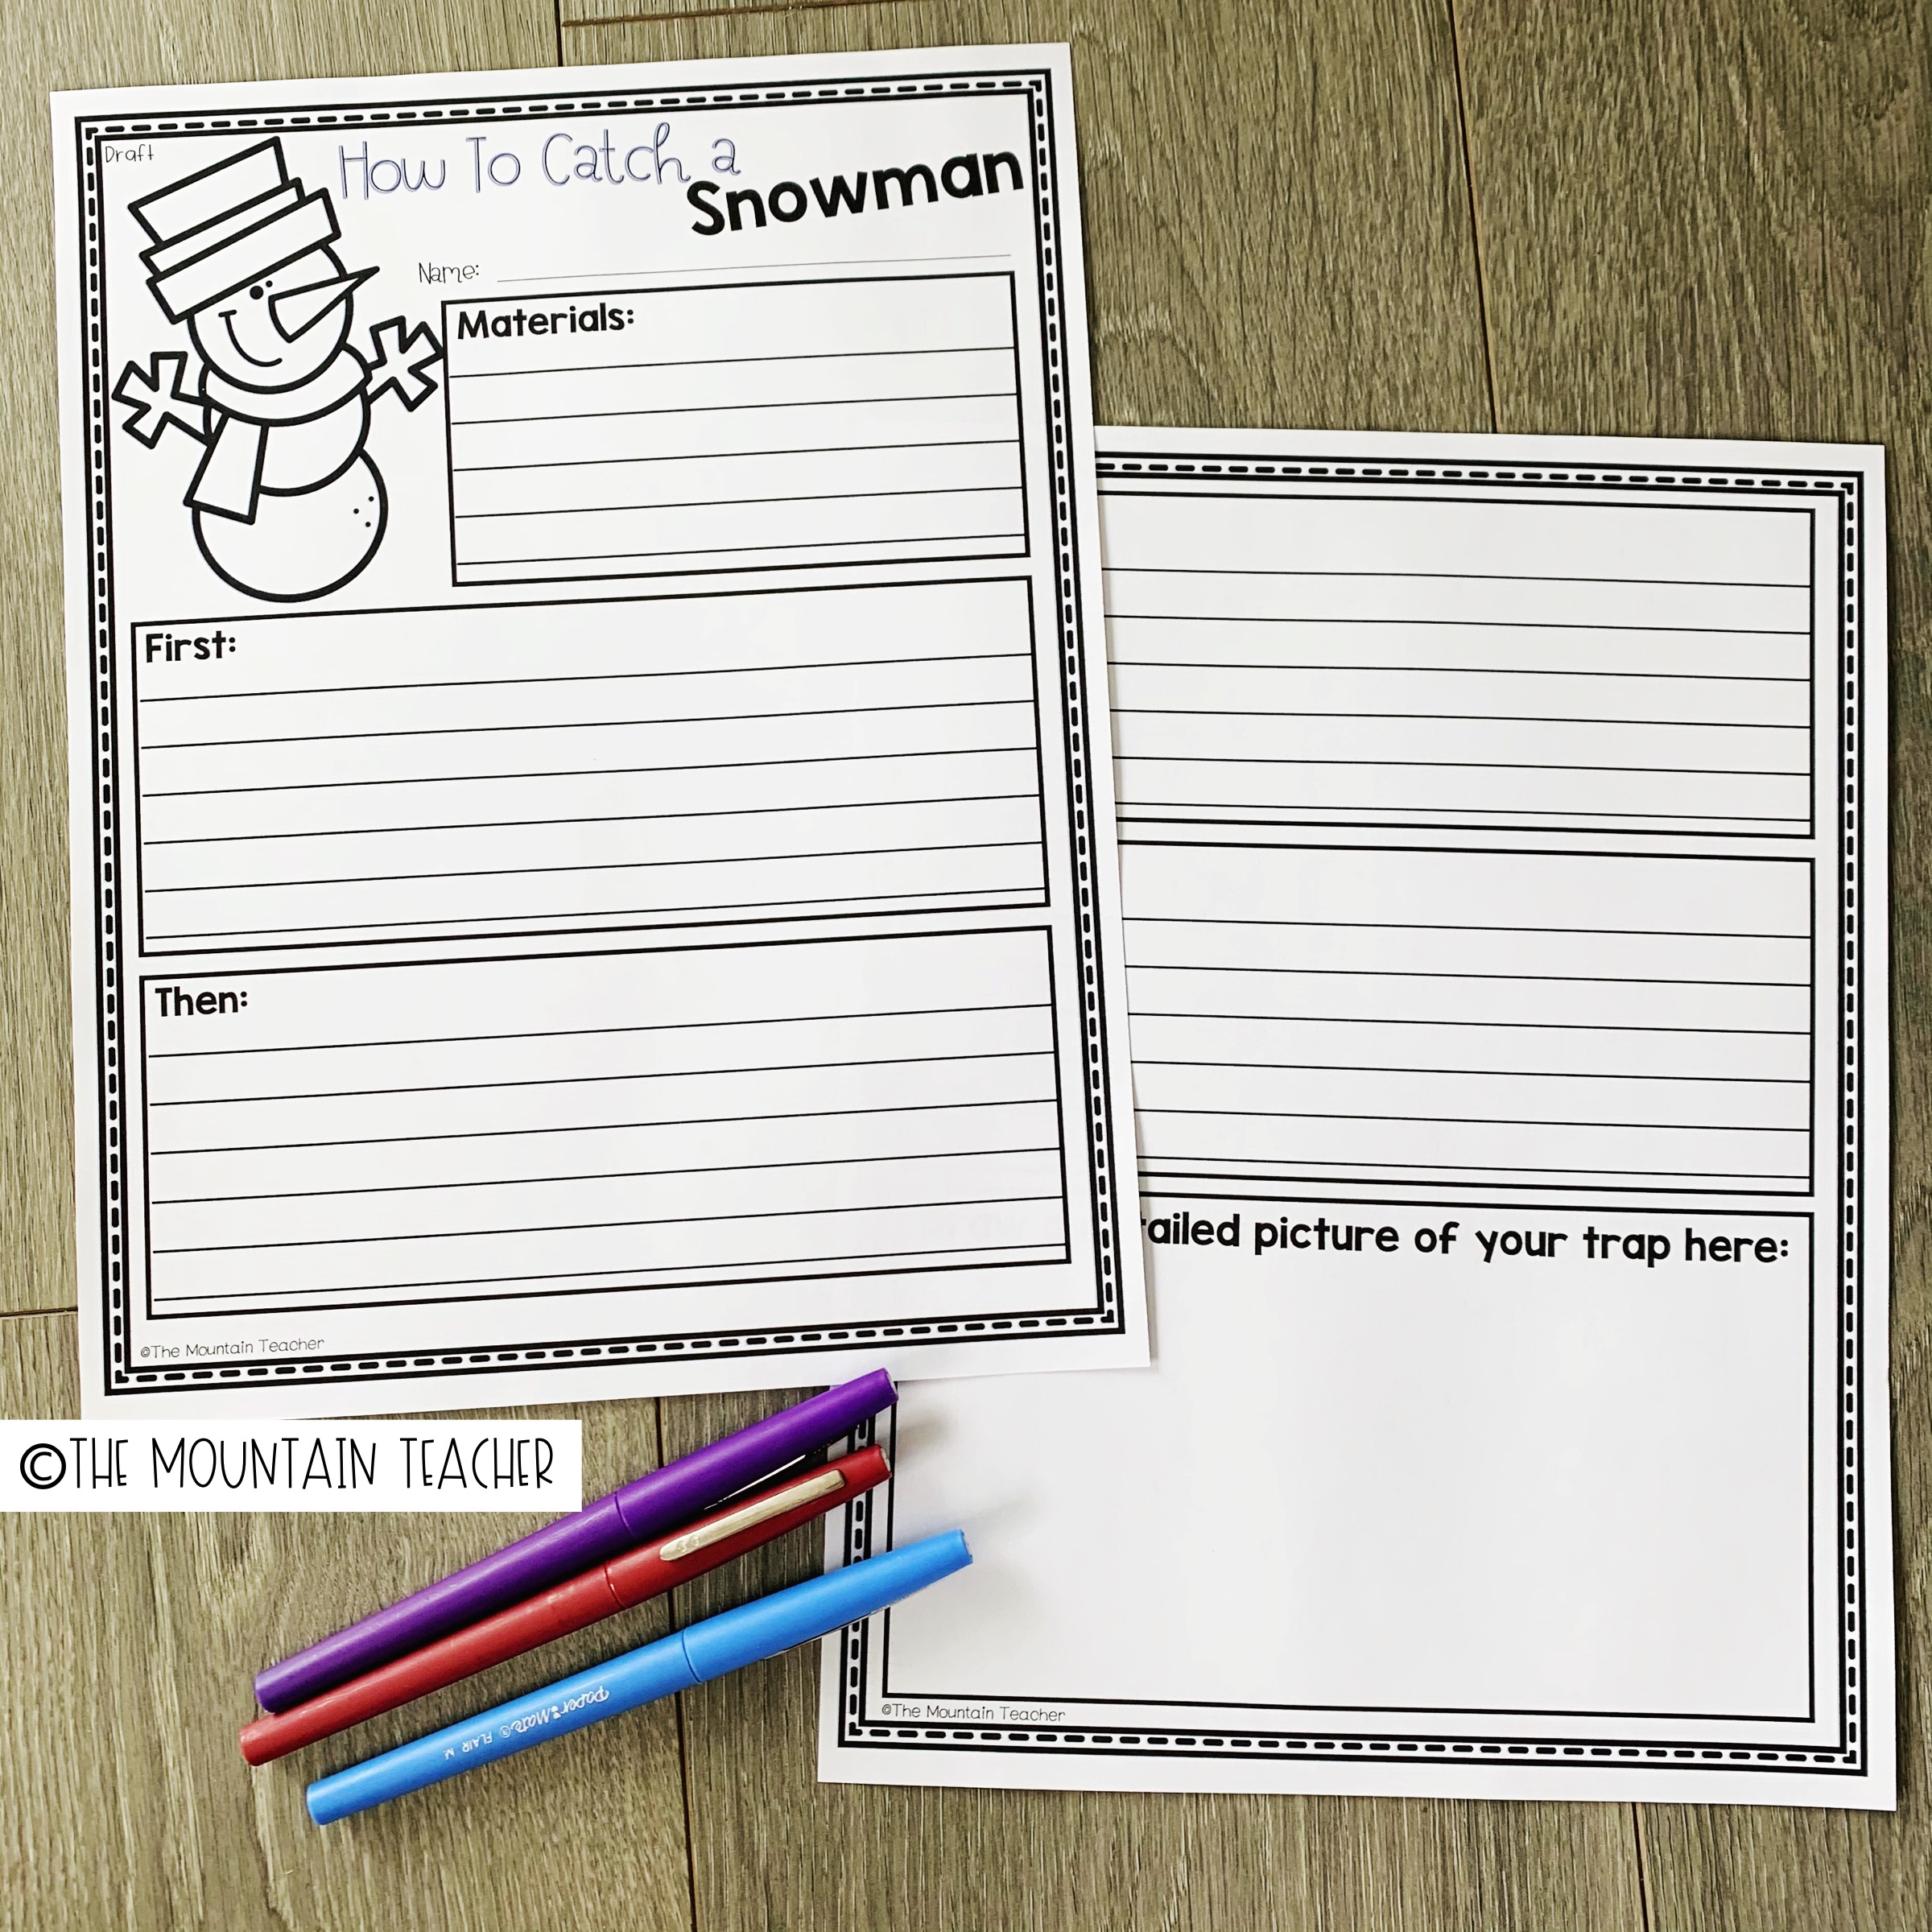 How to Catch a Snowman Writing Activity for Elementary Students 404